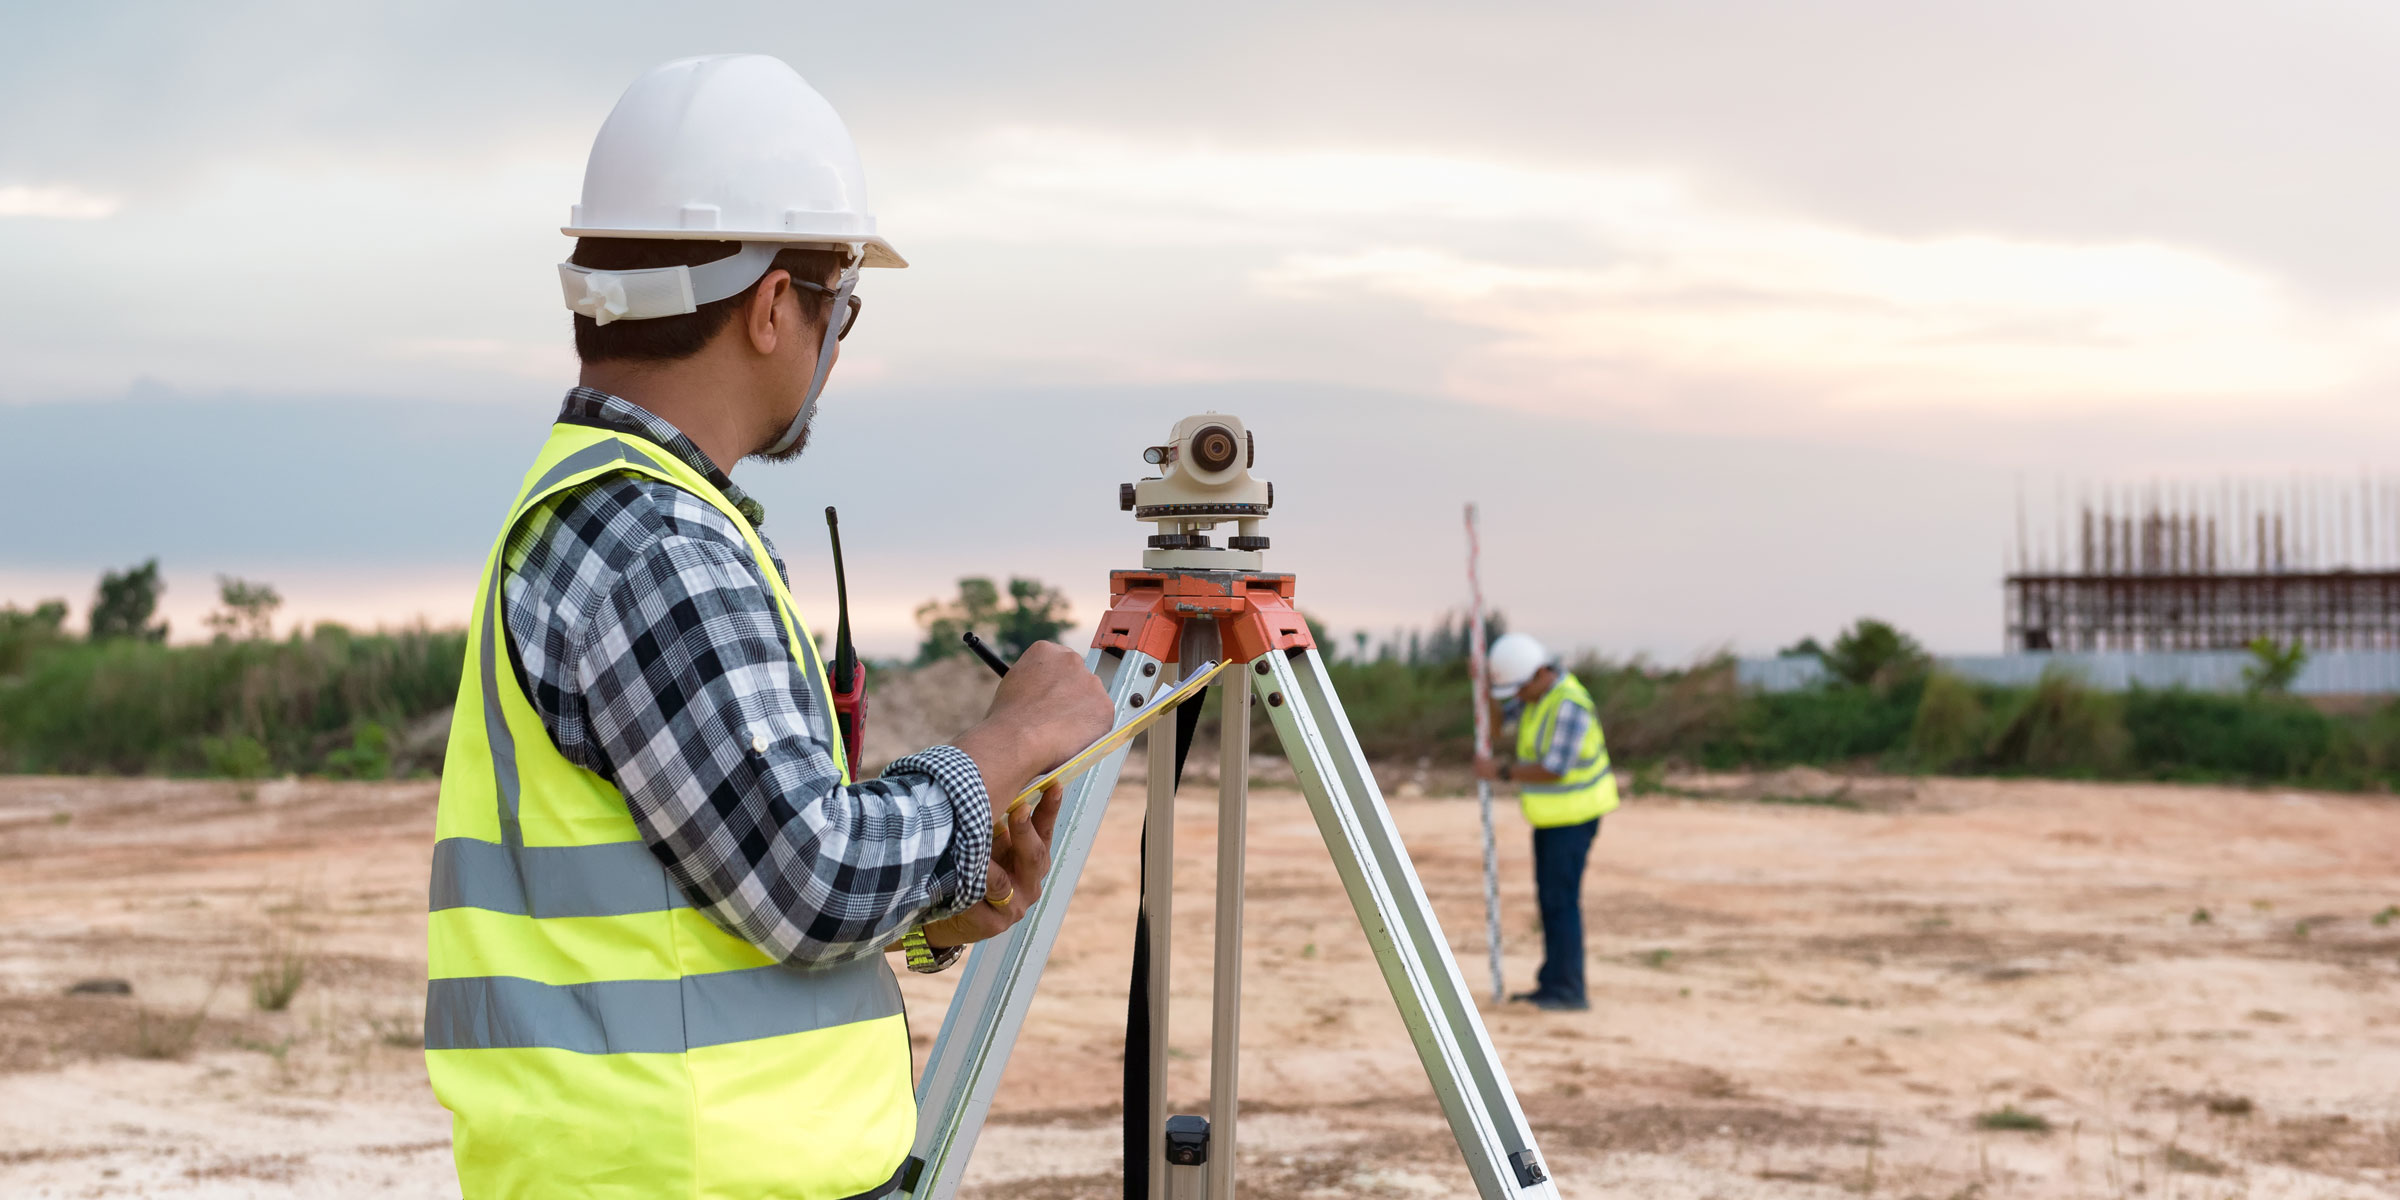 Surveyors & Engineers - what do they do?